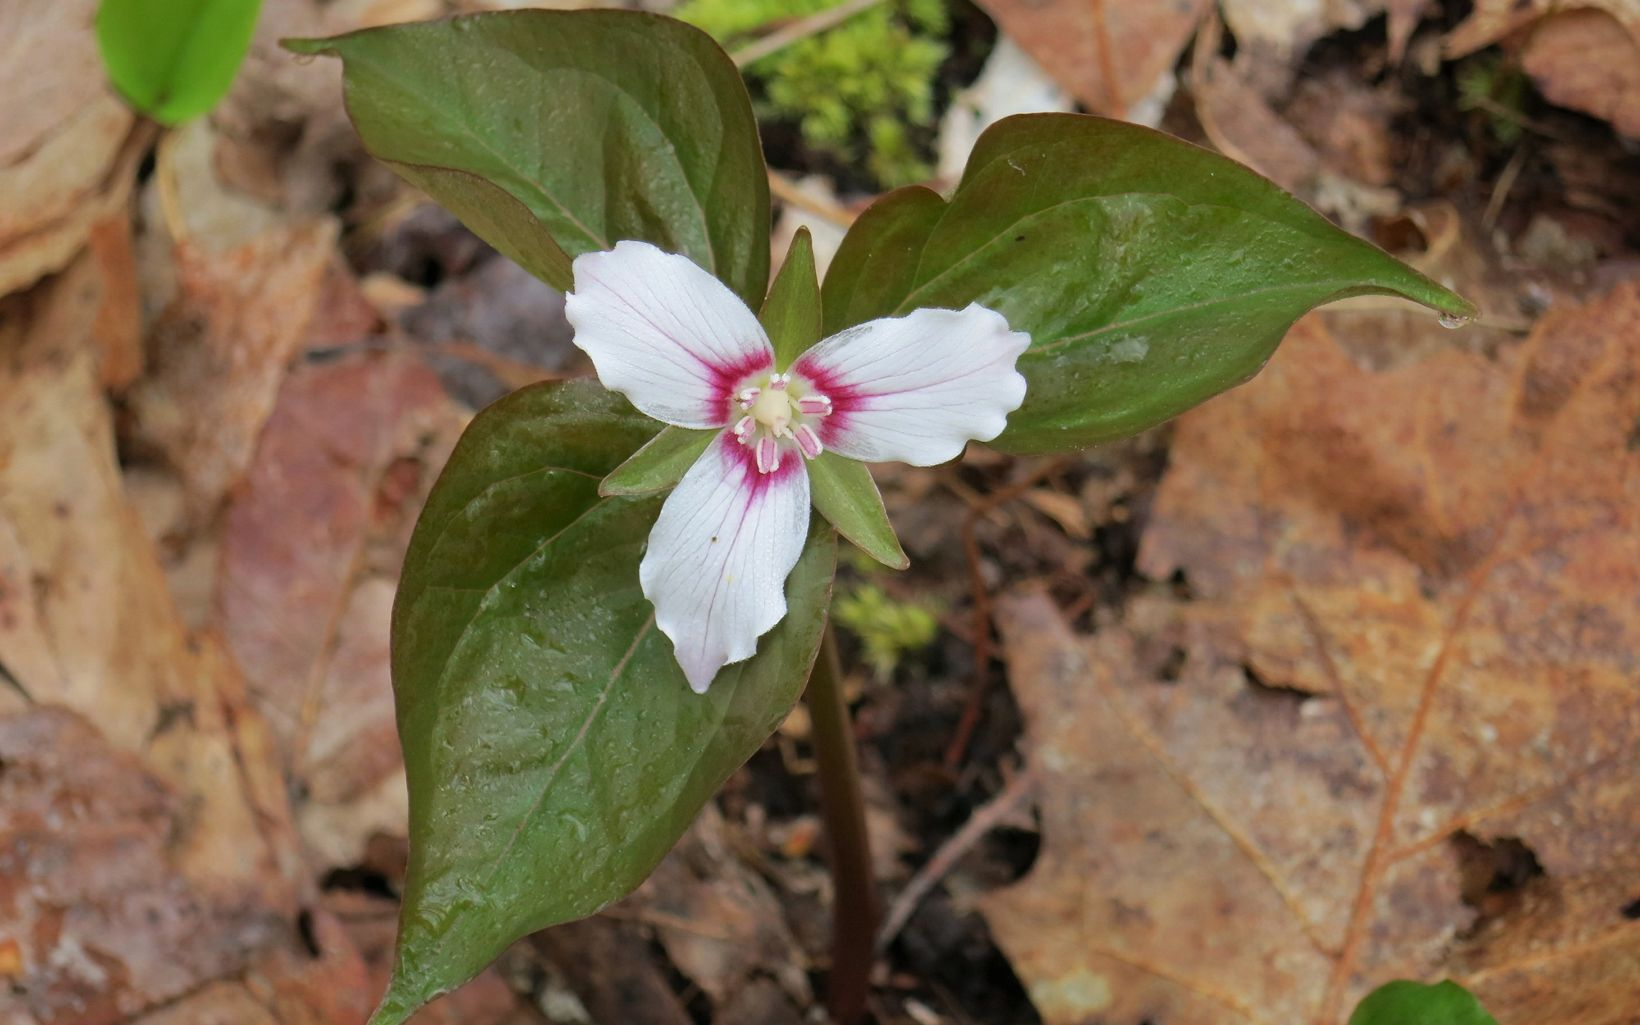 Morgan Swamp Preserve protects many rare plants that are more typically associated with more northern climates such as the painted trillium.